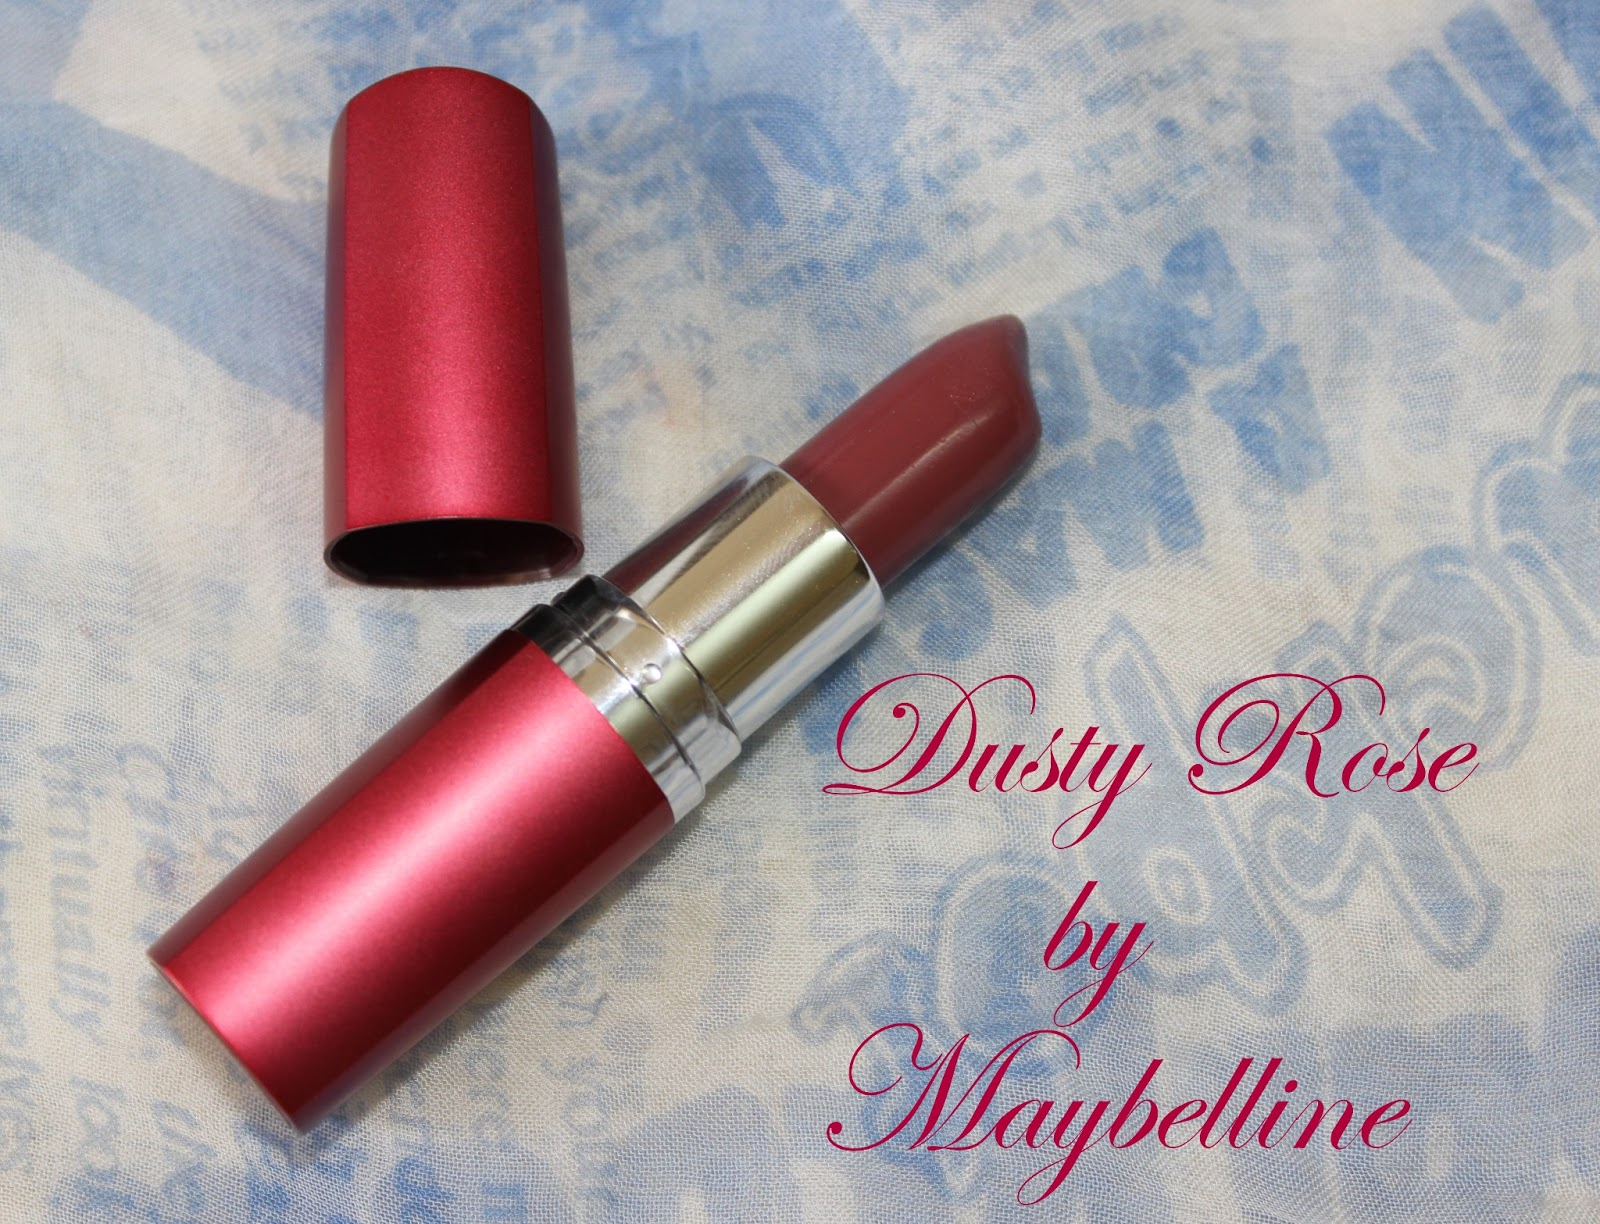 Maybelline Colorsensational Moisture Extreme Lipstick In Dusty Rose